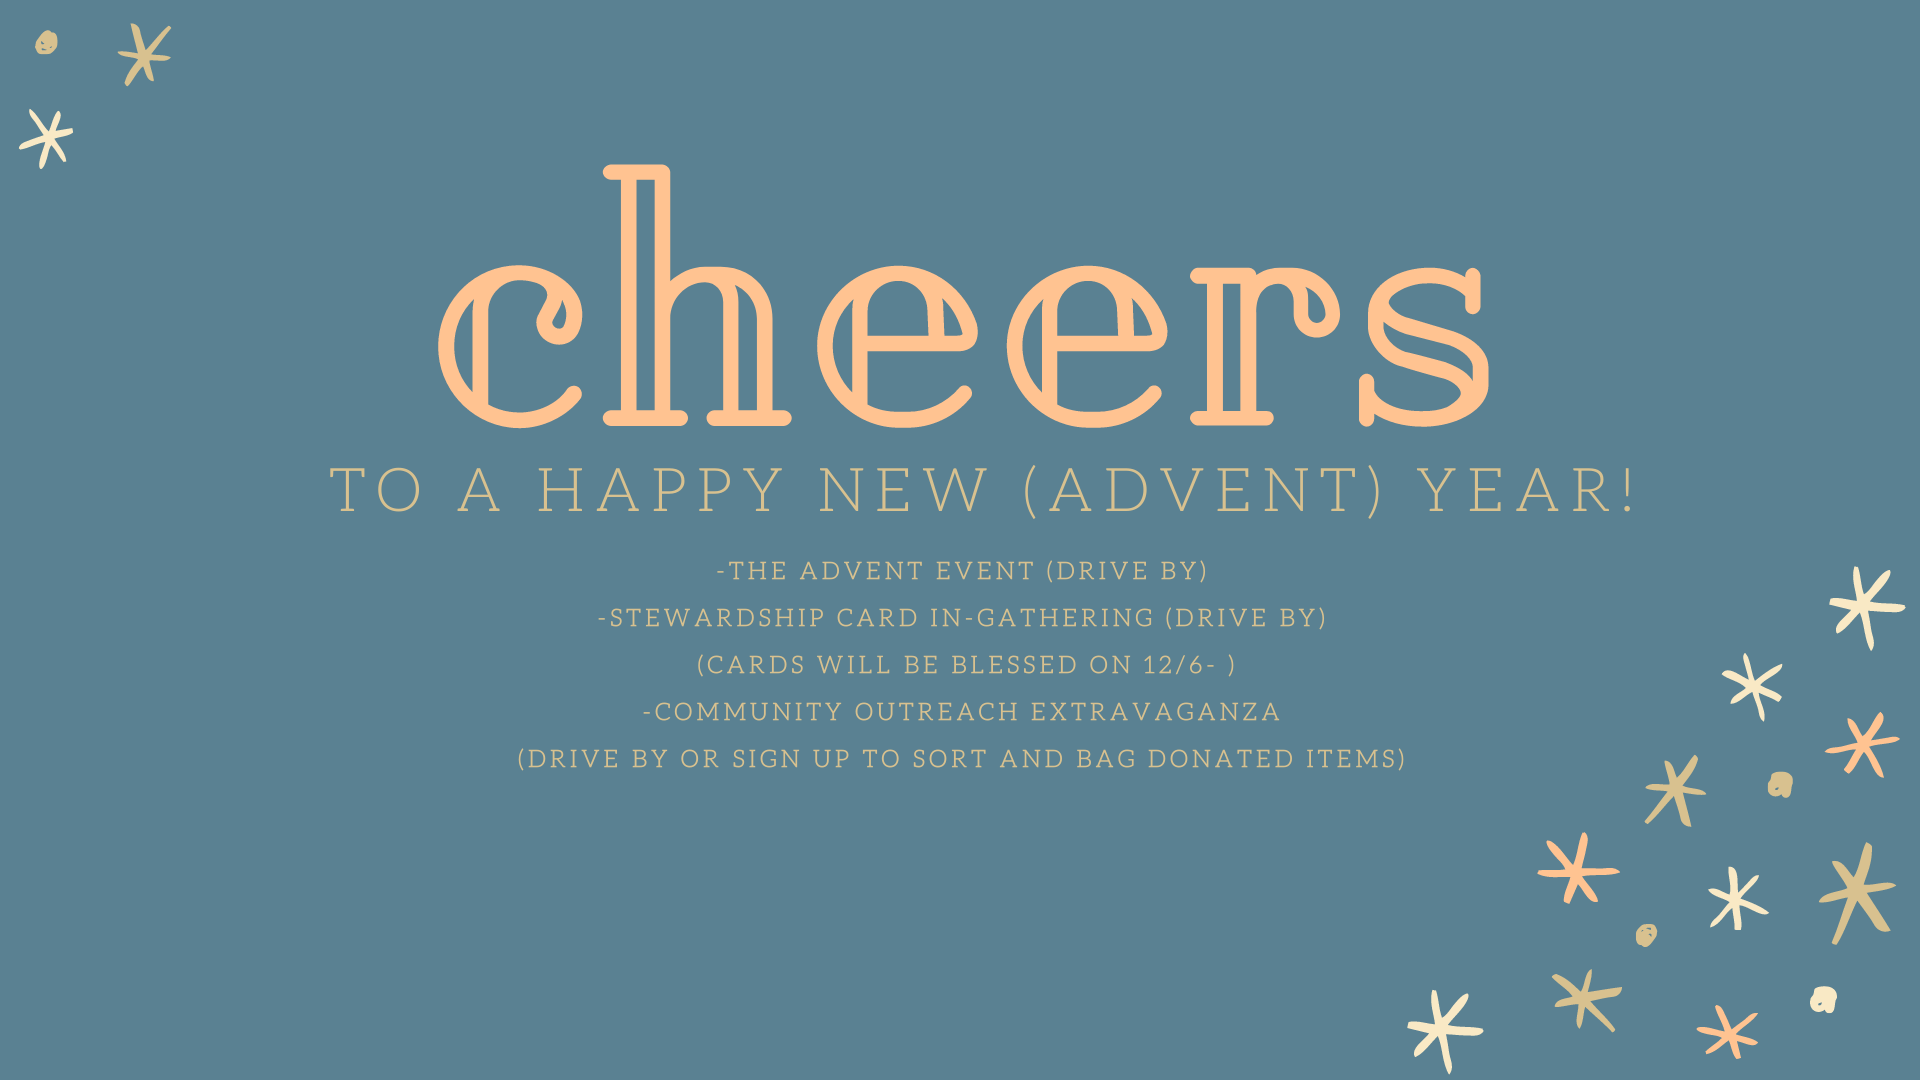 copy-of-copy-of-to-a-happy-new-advent-year_585